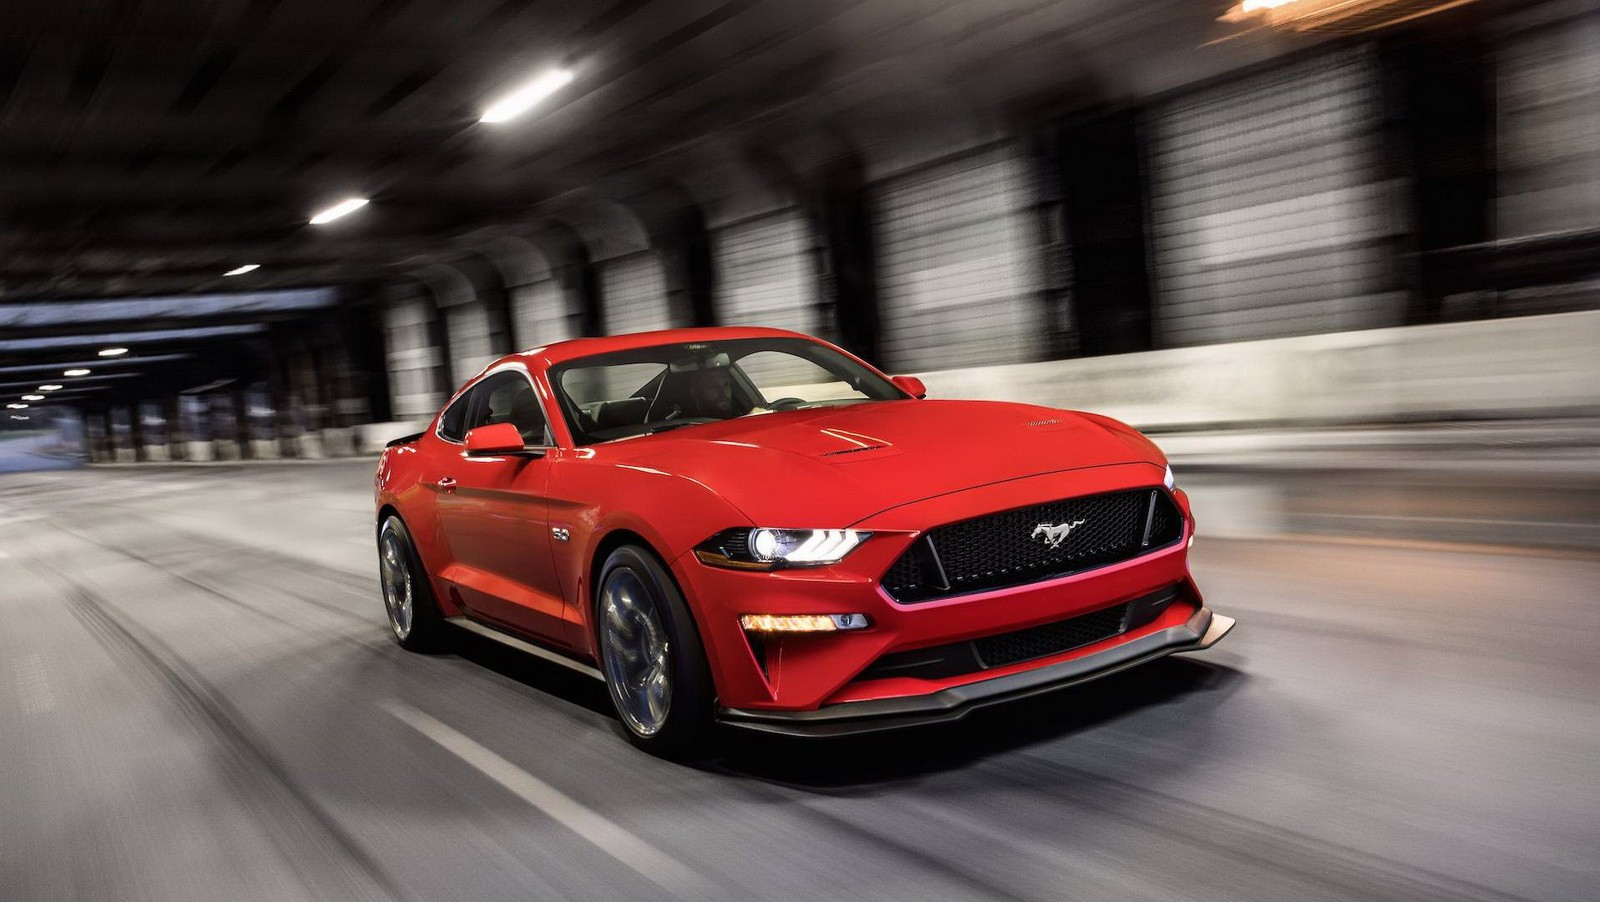 2018 ford mustang gt dyno pull reveals coyote v8 produces - Mustang gt ...